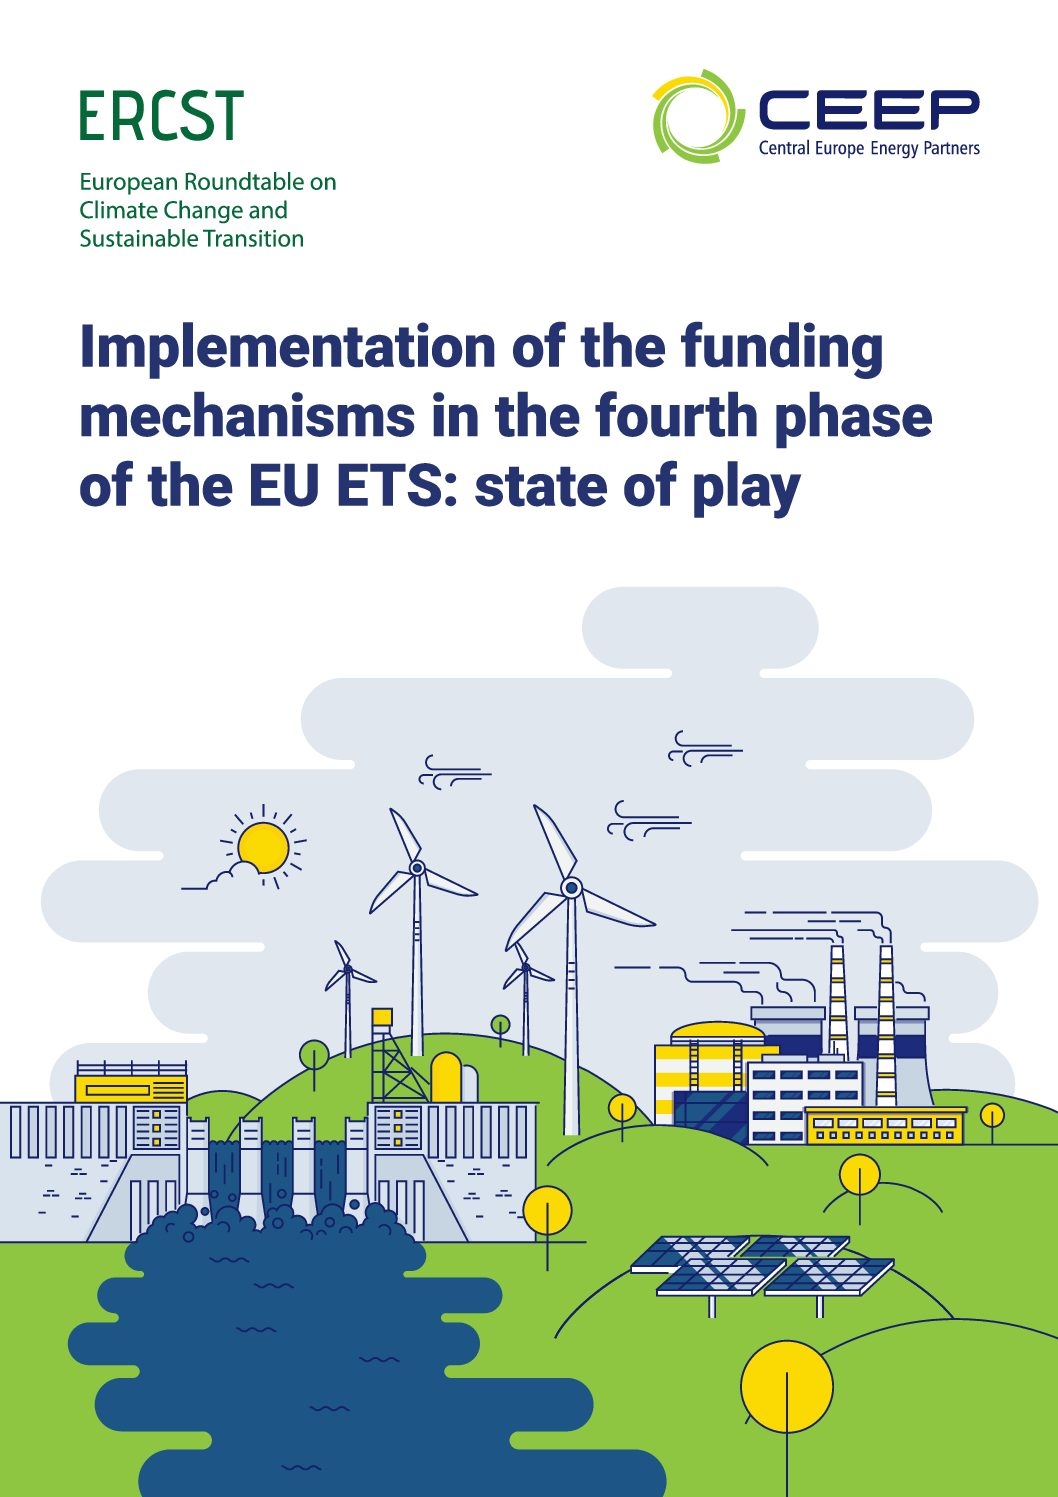 REPORT: Implementation of the funding mechanisms in the fourth phase of the EU ETS: state of play